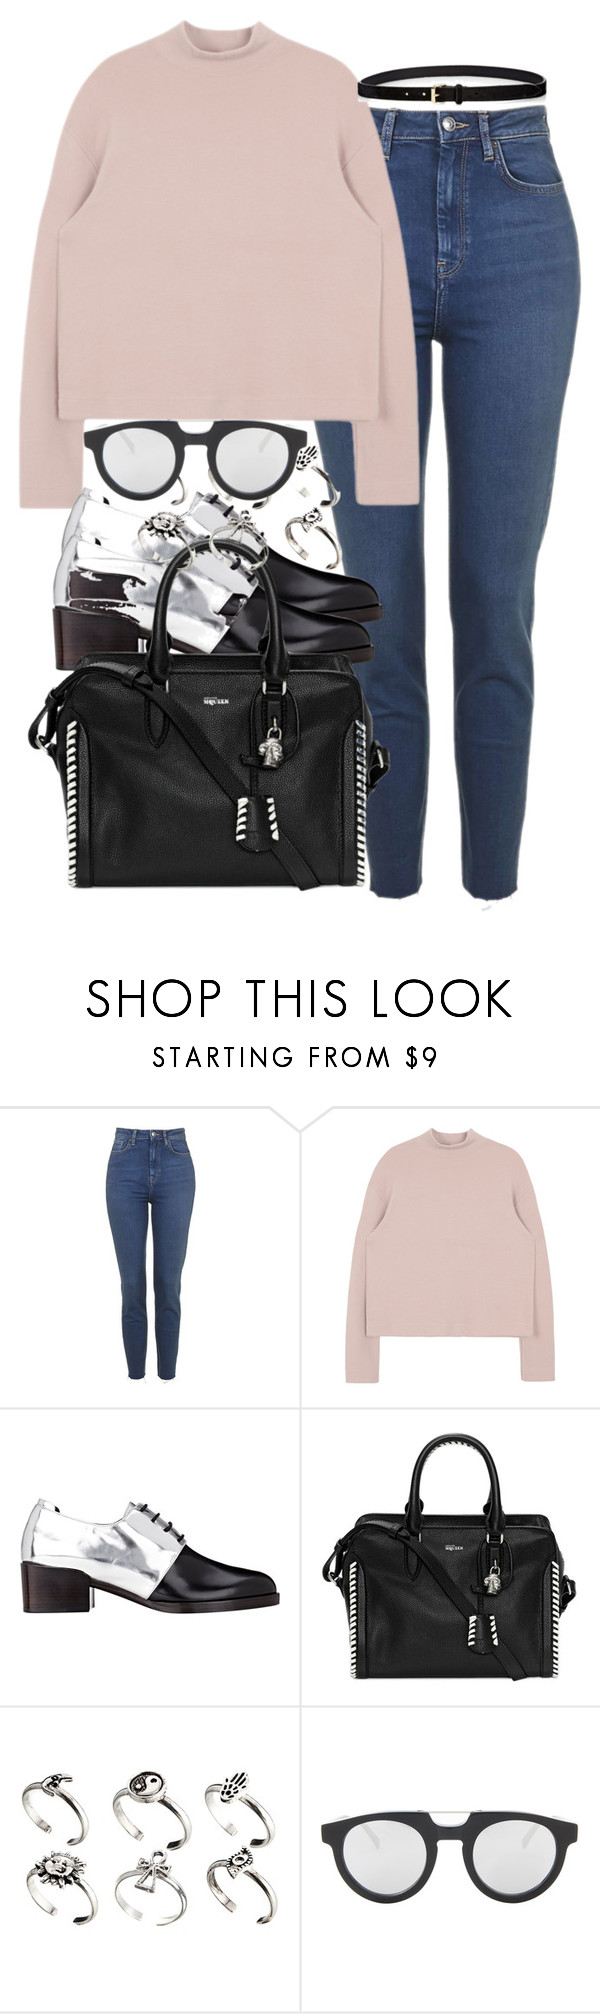 """Untitled #1273"" by she-is-wearing-this ❤ liked on Polyvore featuring 3.1 Phillip Lim, Alexander McQueen, ASOS, Spektre and Étoile Isabel Marant"